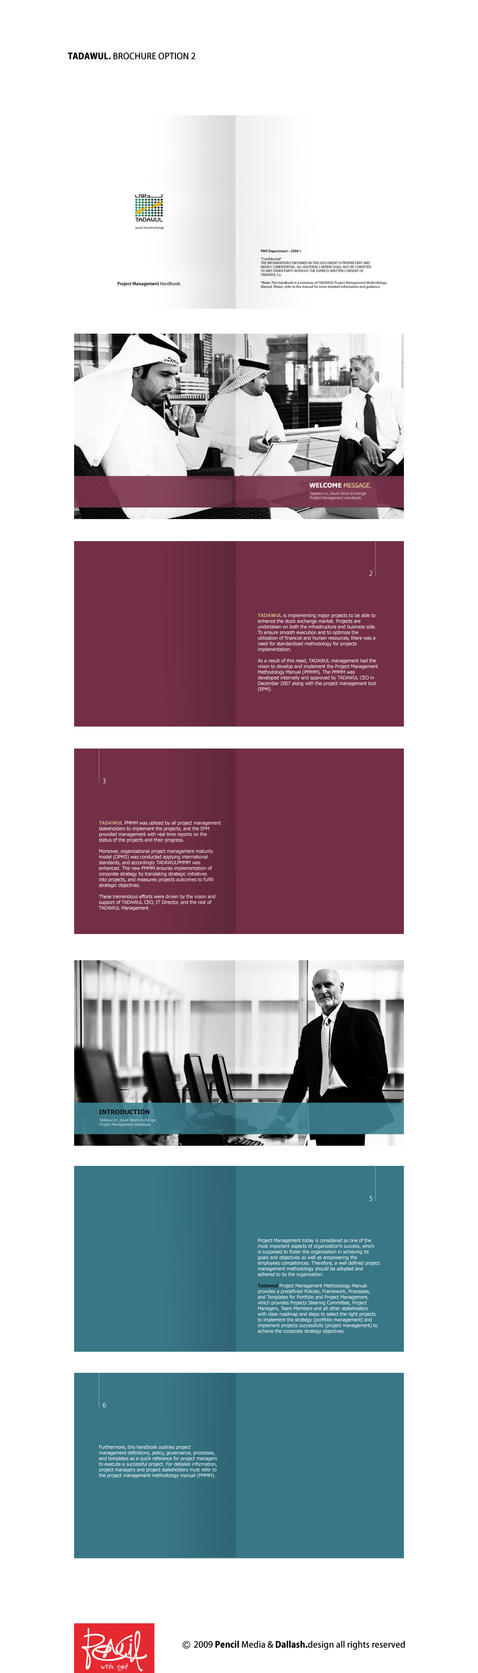 Tadawul. Brochure 2 by Dalash